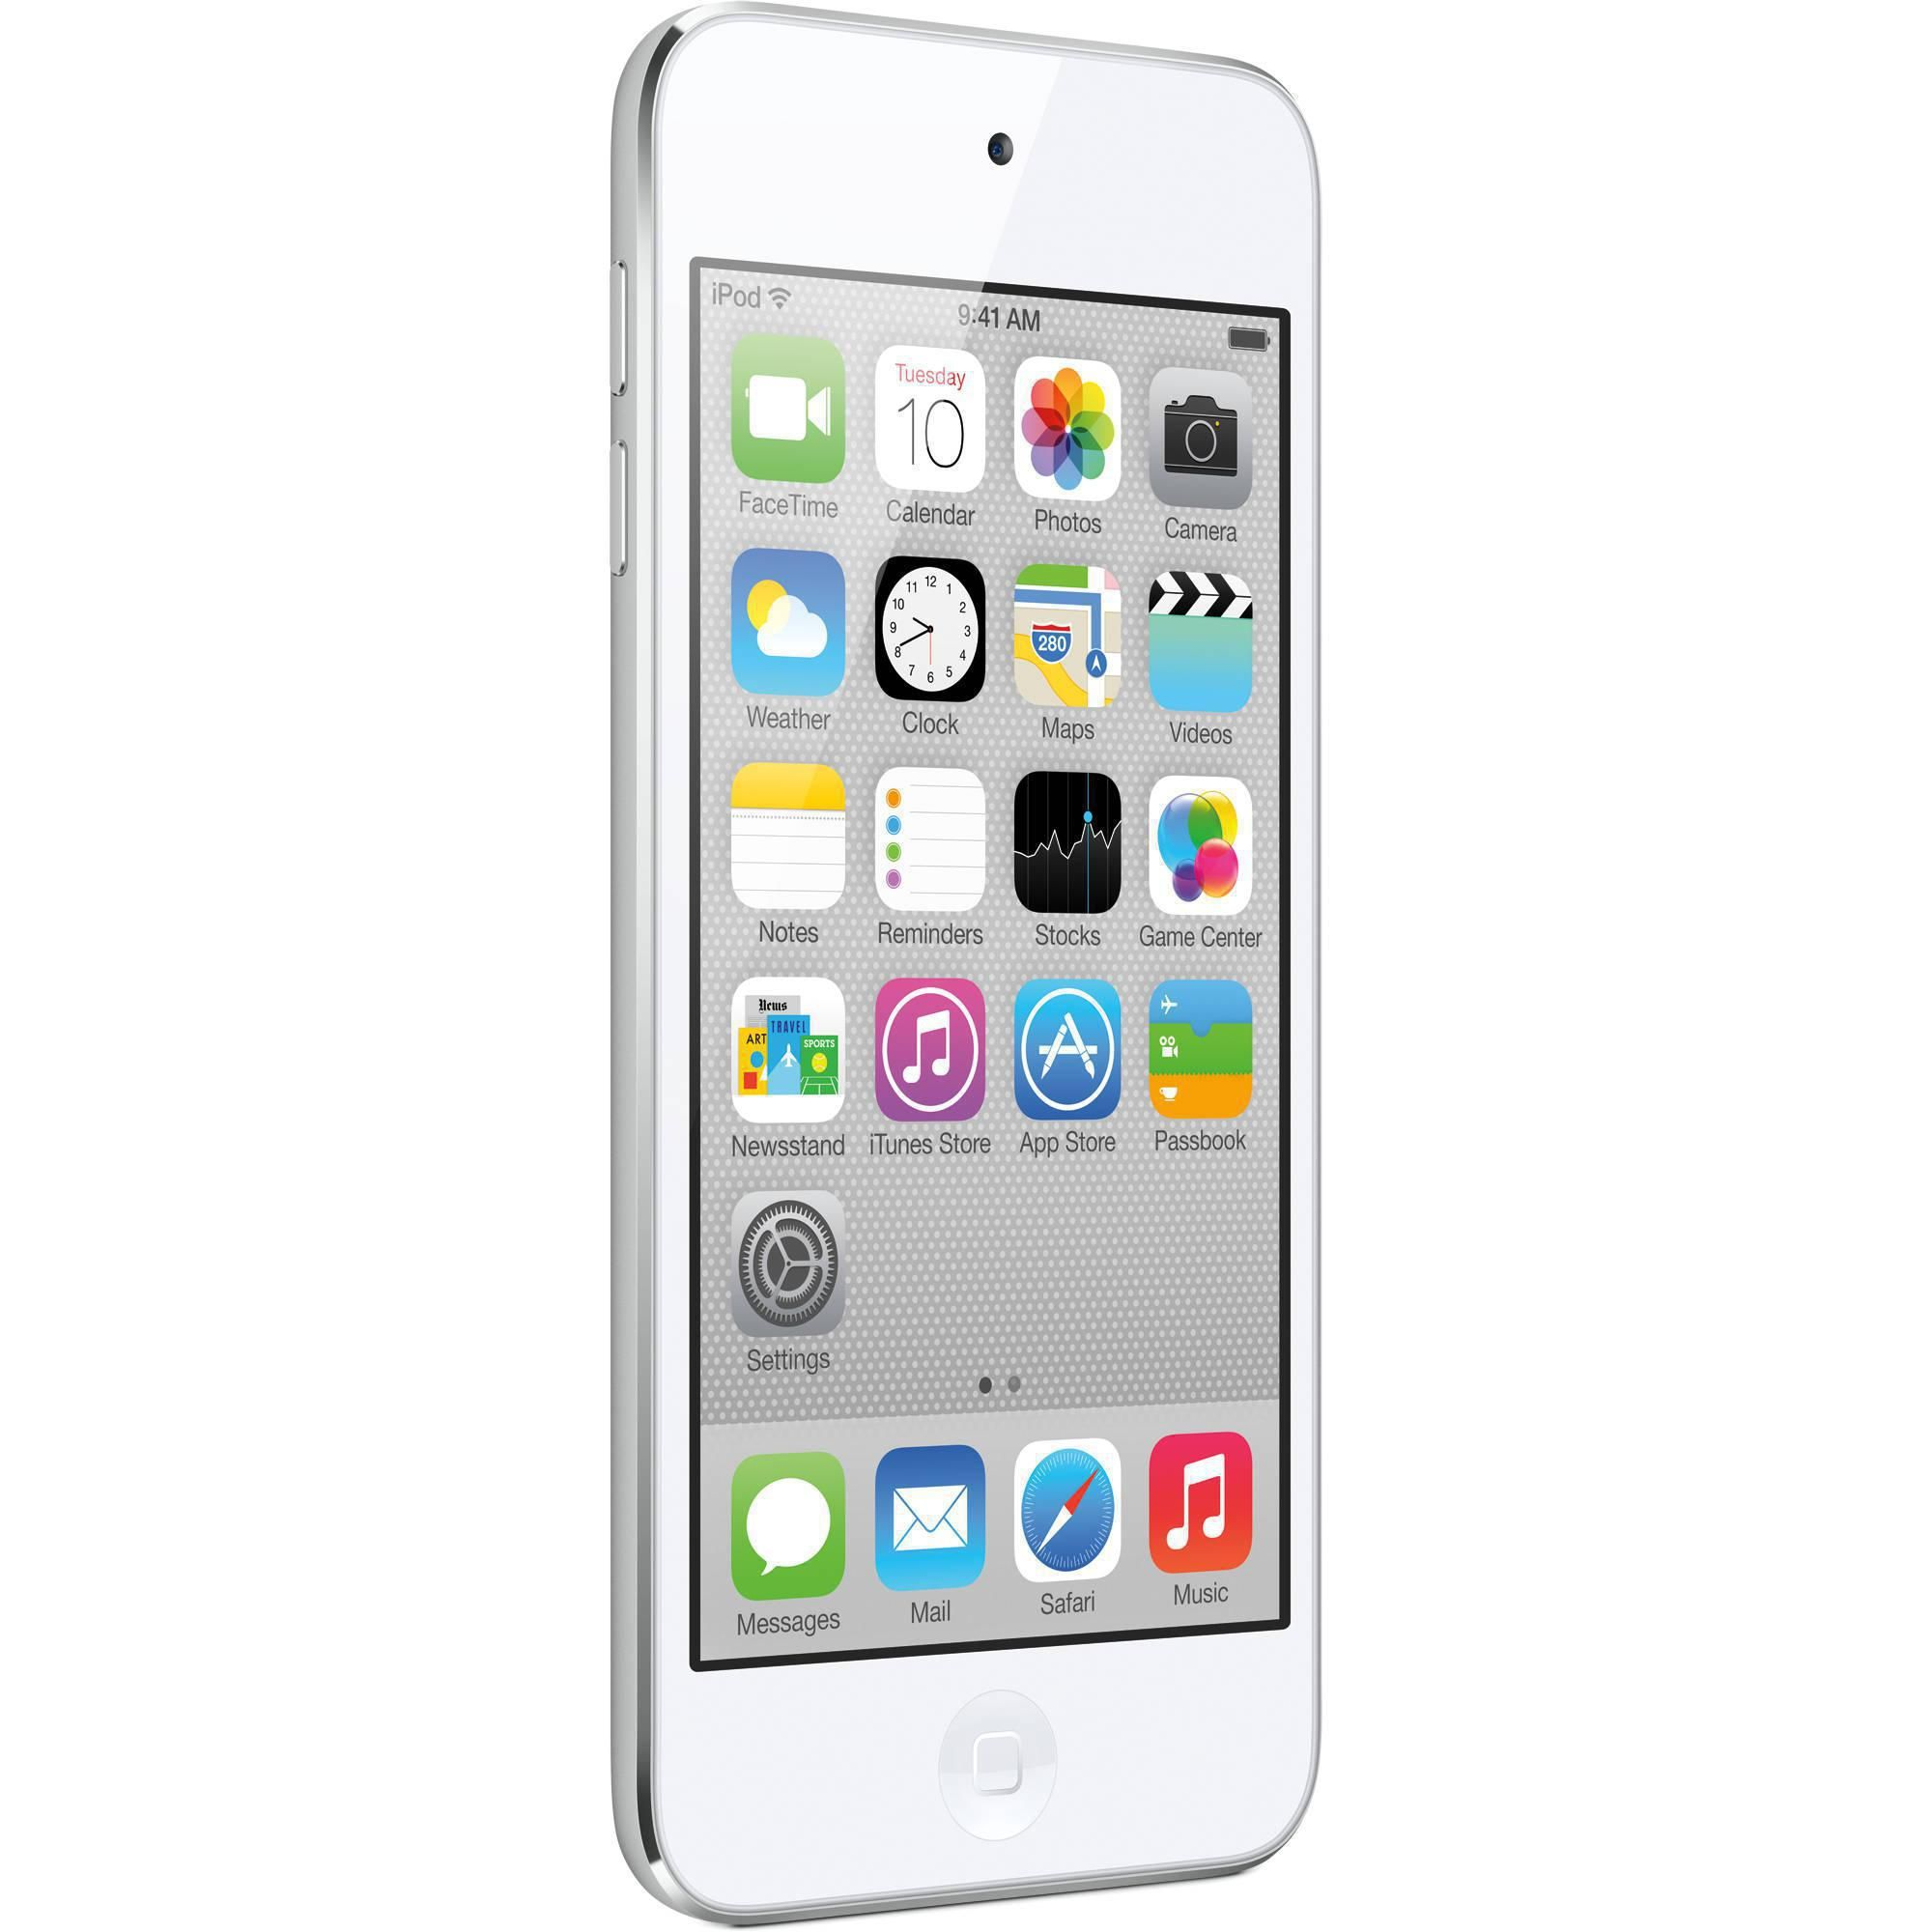 6th Generation Newest Model Apple iPod Touch 64GB Silver